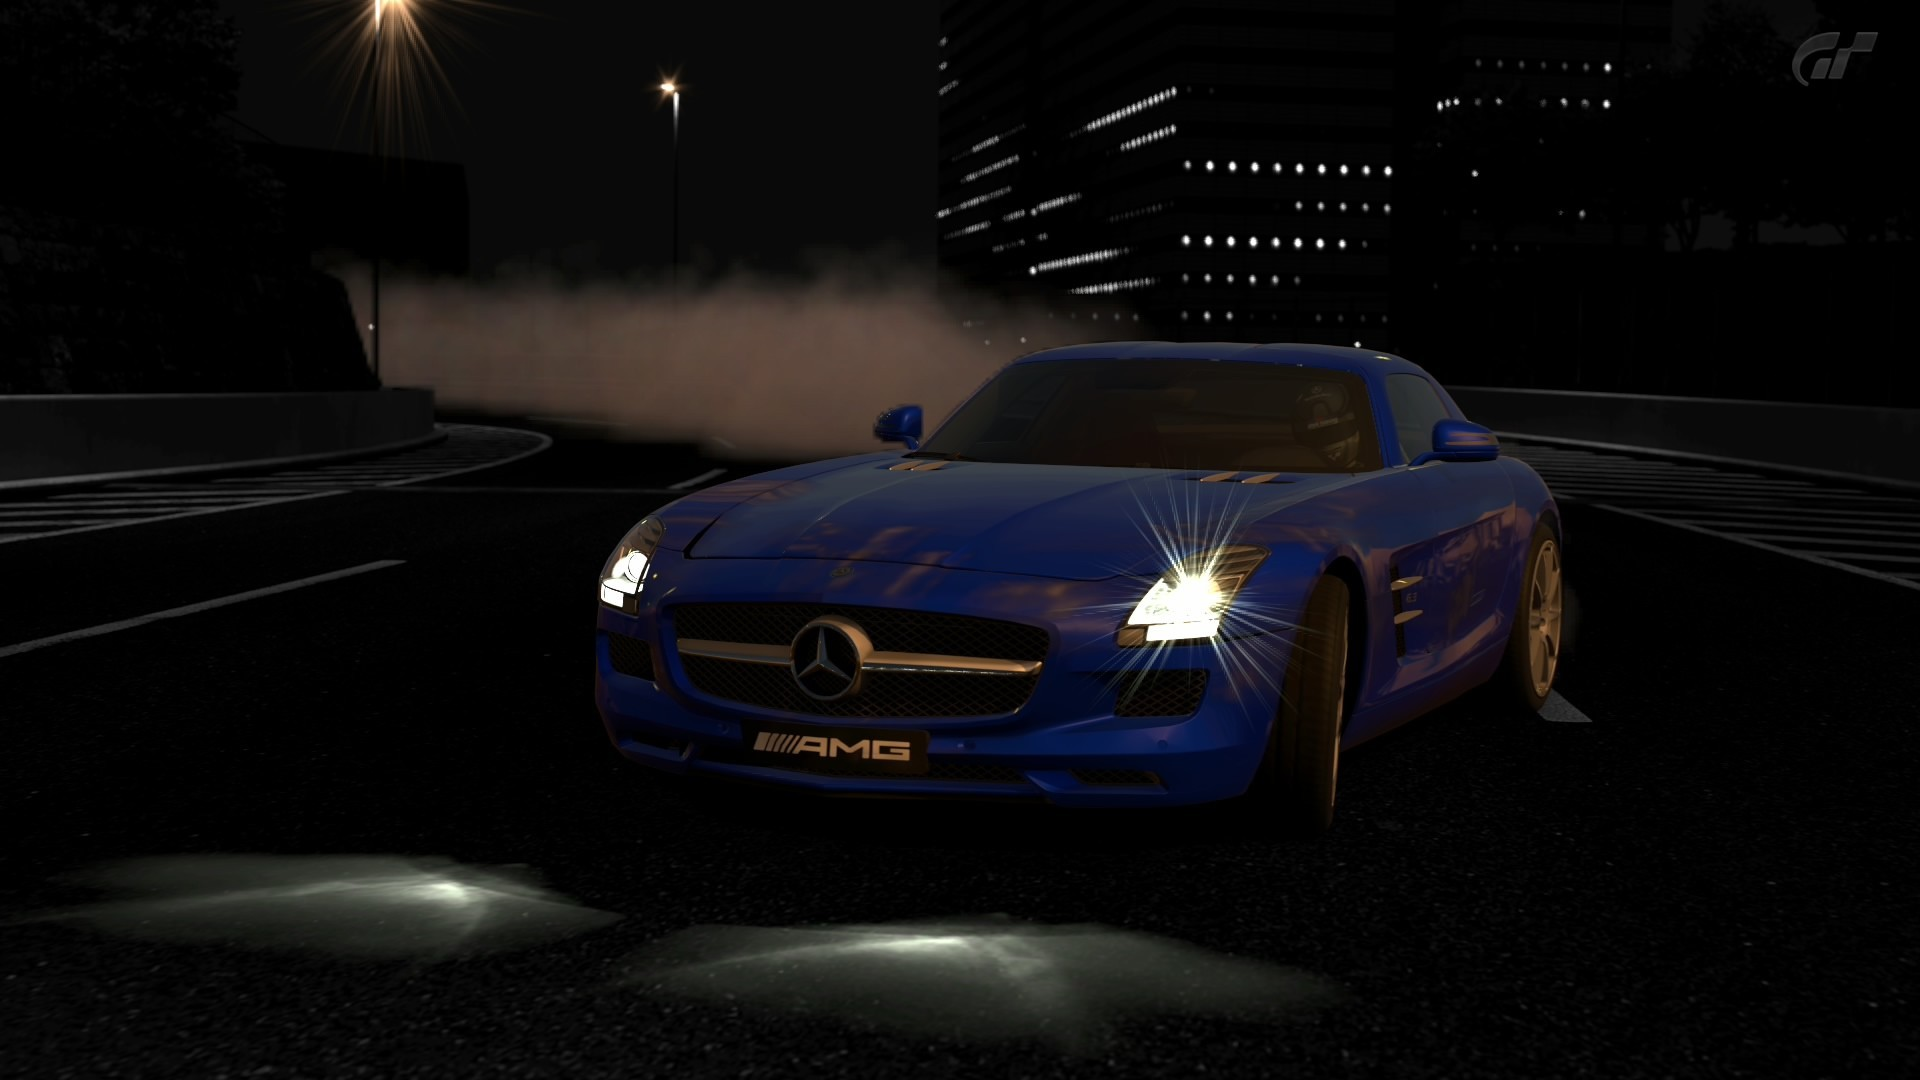 cars Gran Turismo vehicles HD Wallpaper